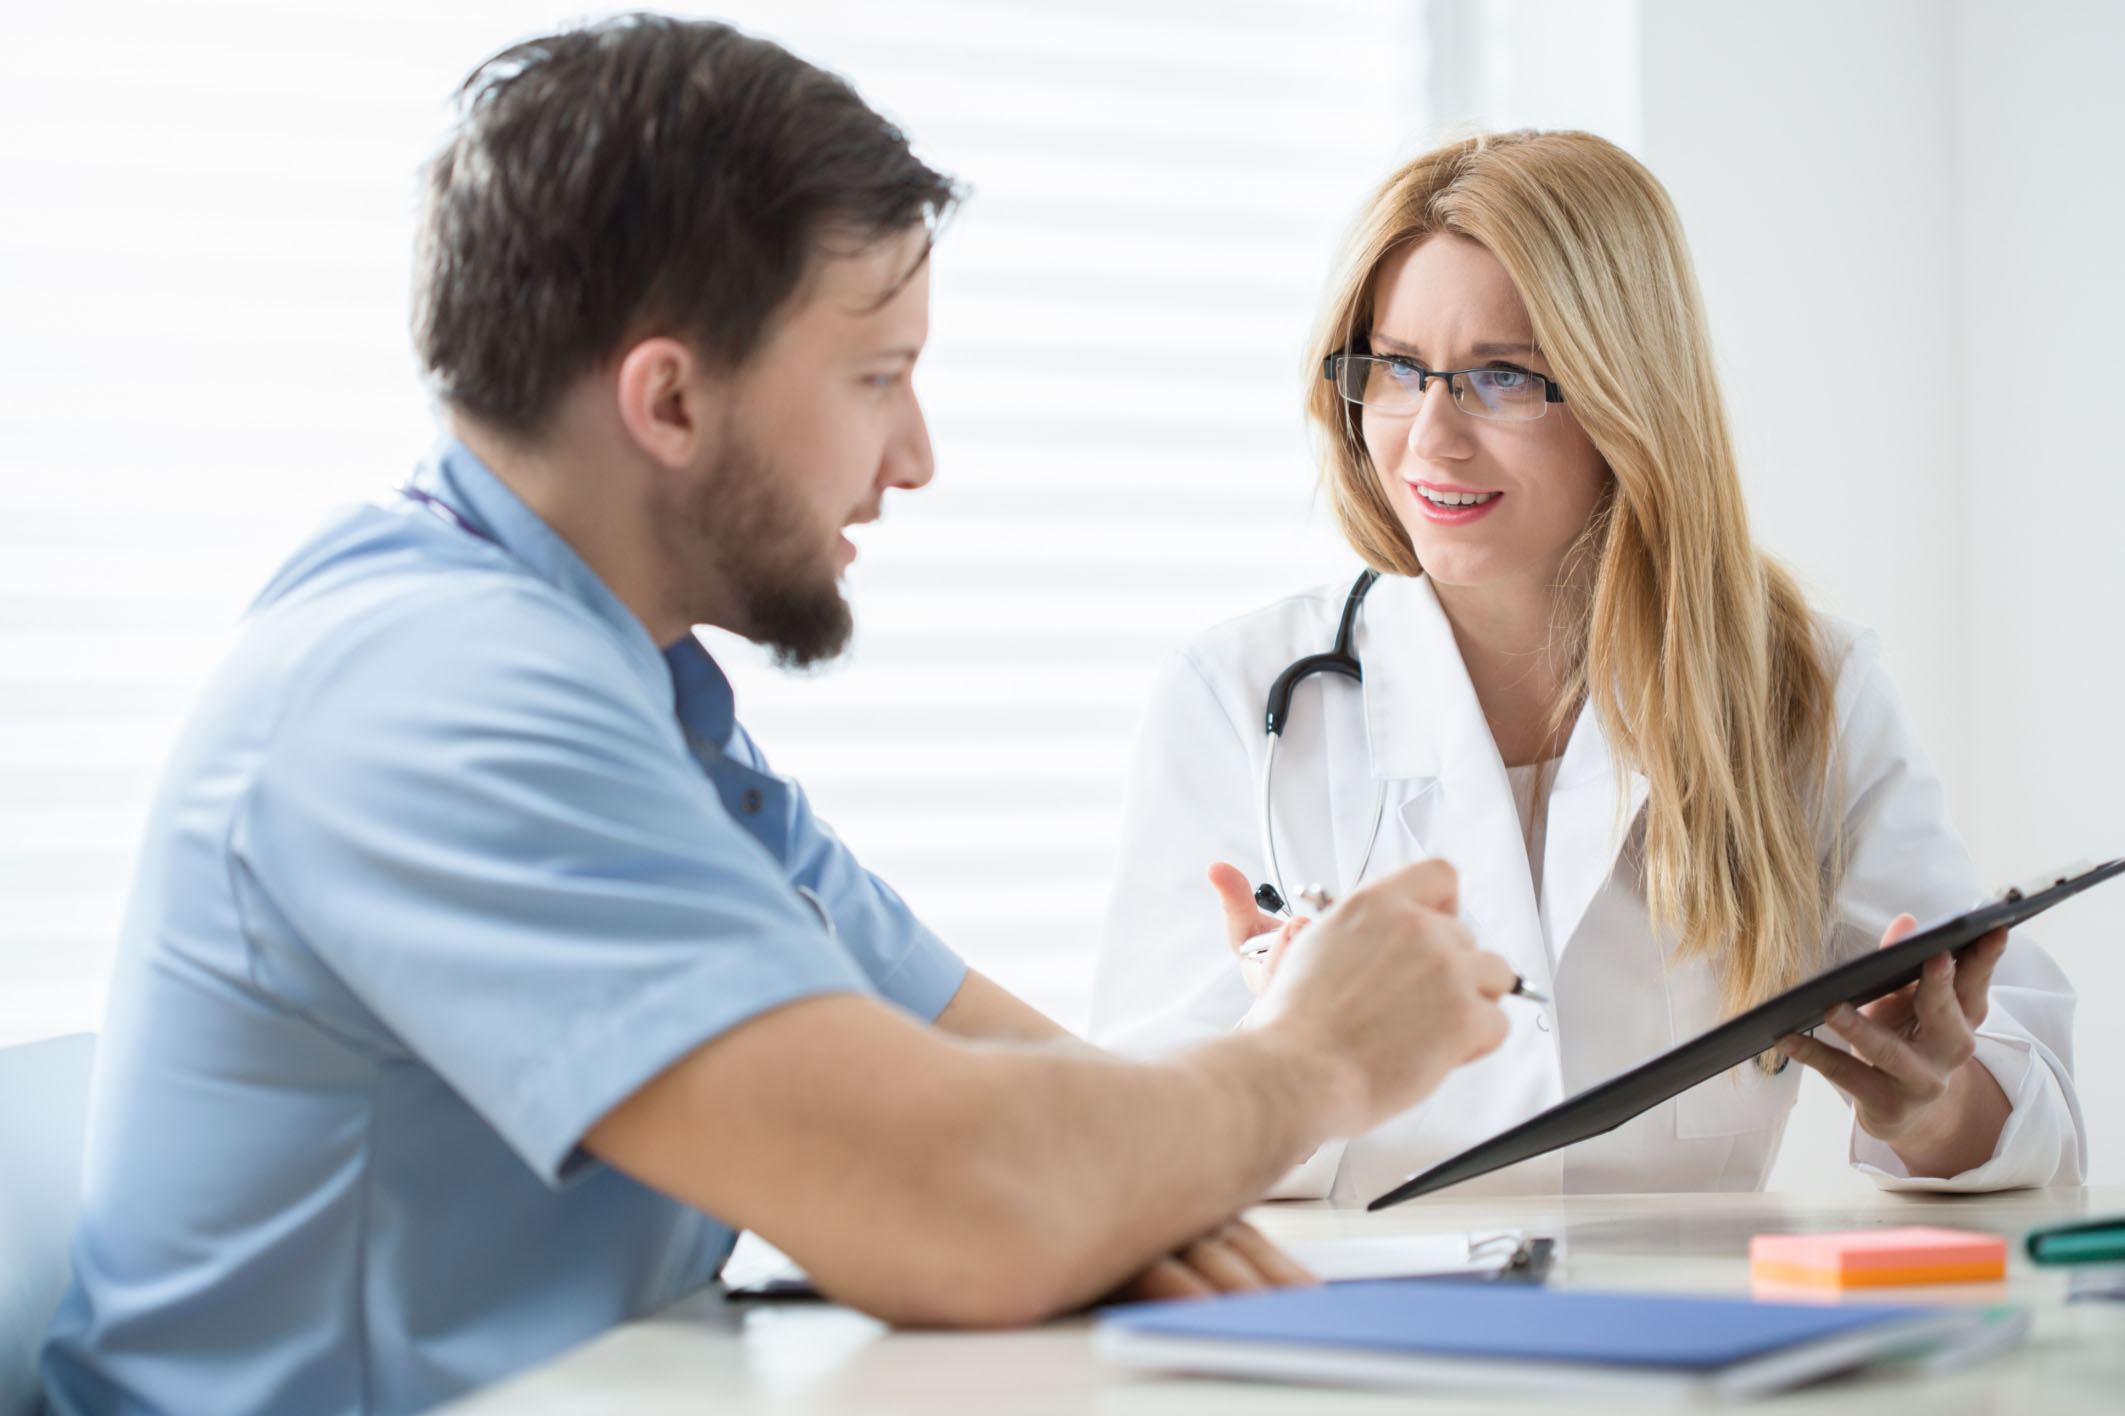 What makes a student a good medical school candidate?